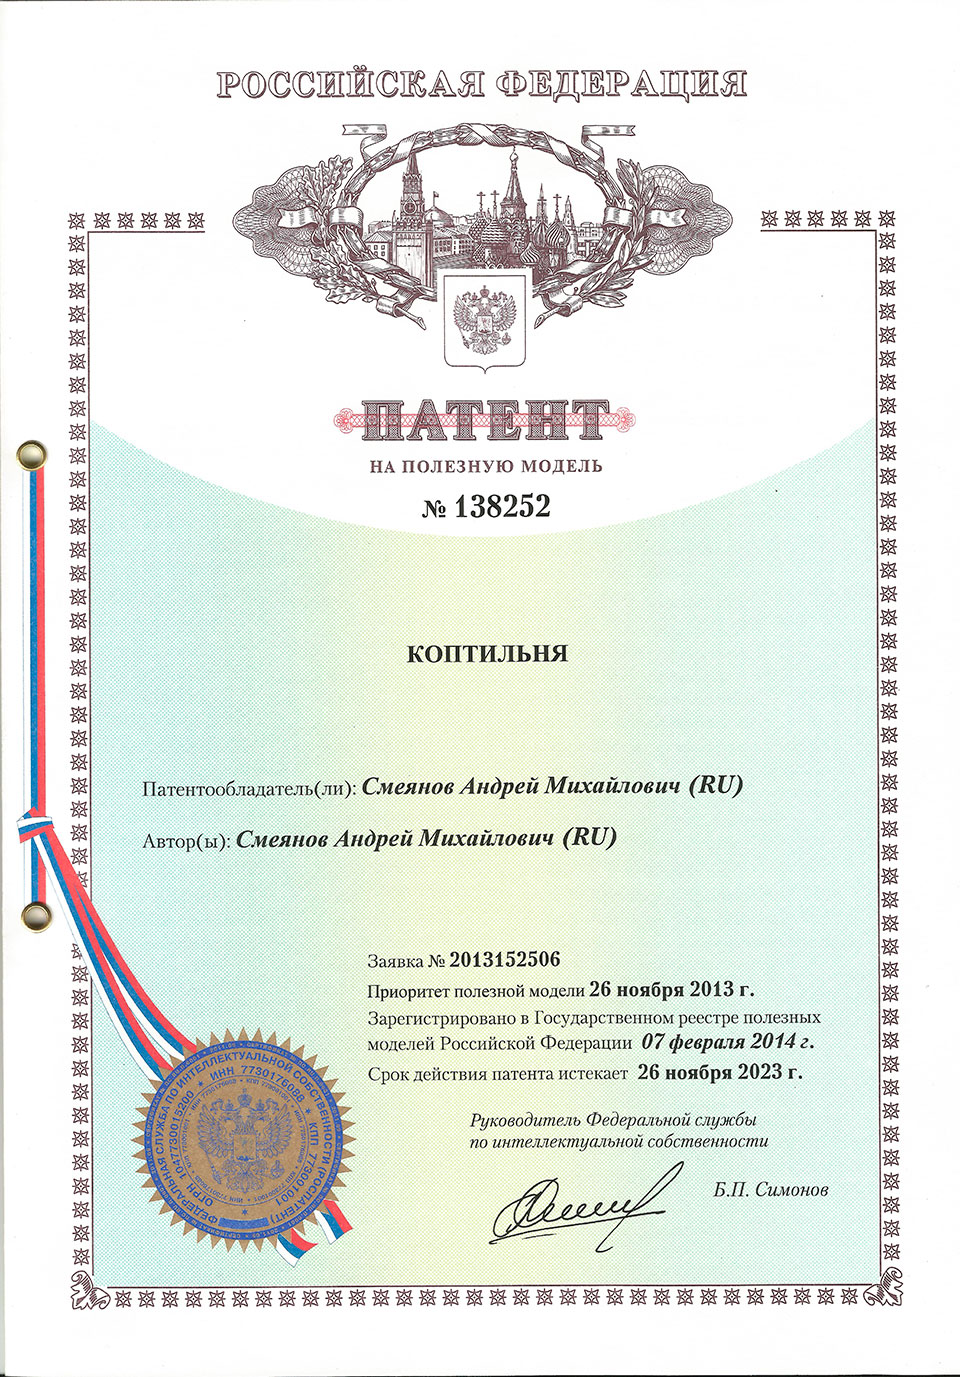 patent_karelskaya_pushinka